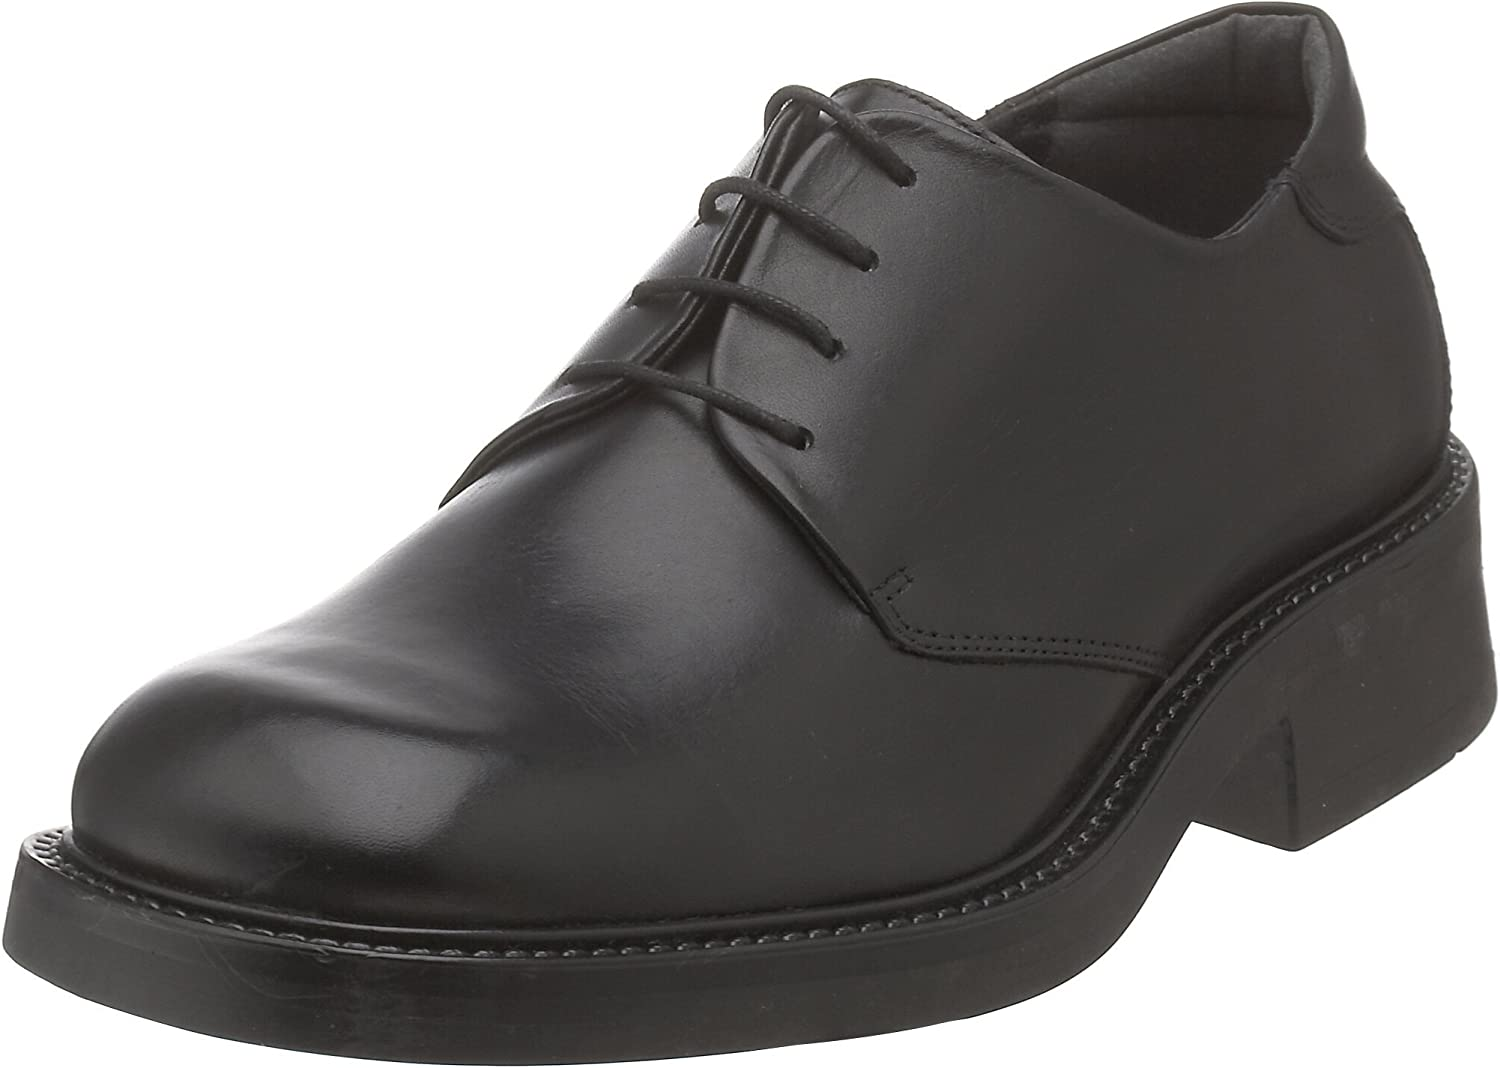 Kenneth Cole Unlisted Men's First Class Oxford Shoe